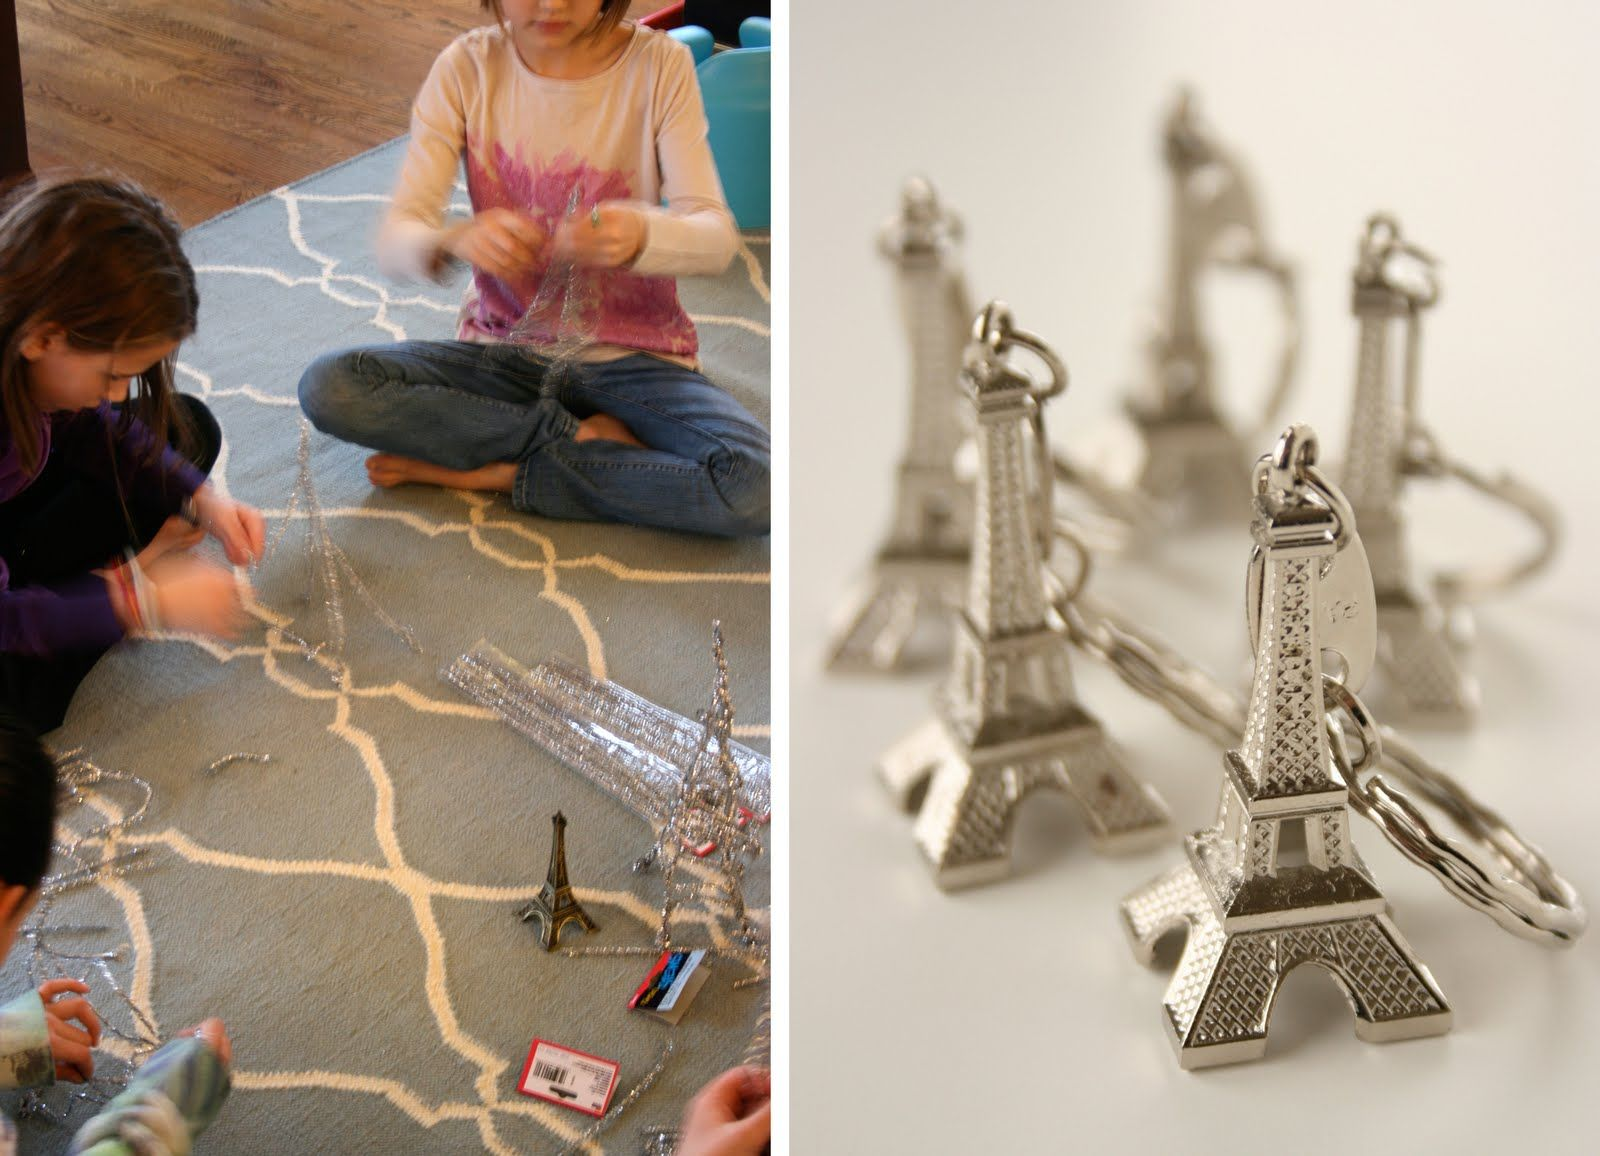 Paris themed birthday party ideas - Paris Party Macron Lollies For Invitations And Building The Eiffel Tower Out Of Silver Pipe Cleaners